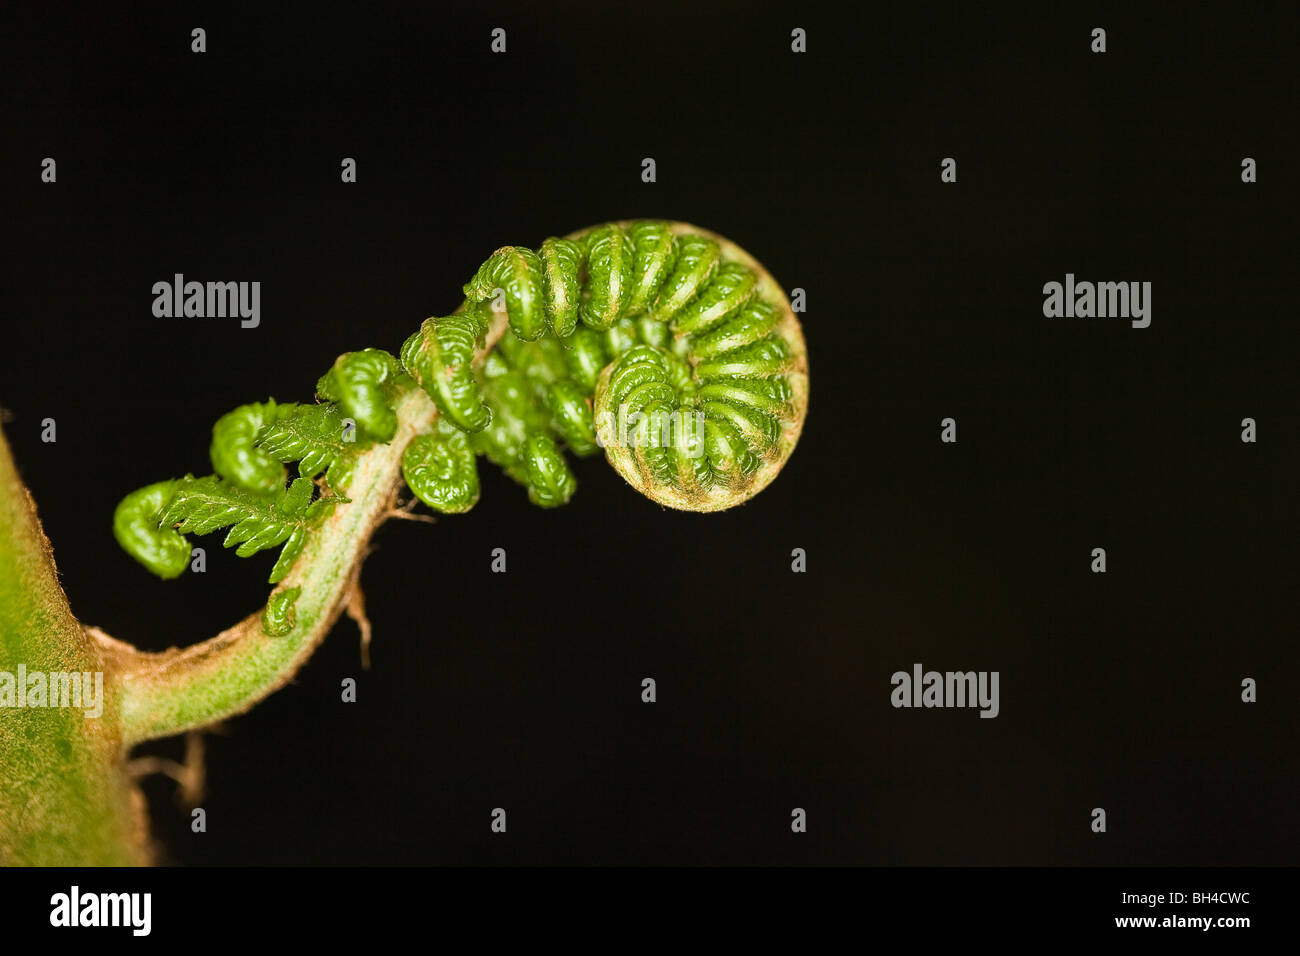 A new, fresh, tender leaf (Matteuccia struthiopteris(L.)todaro) is coming to being in Kew Gardens. - Stock Image